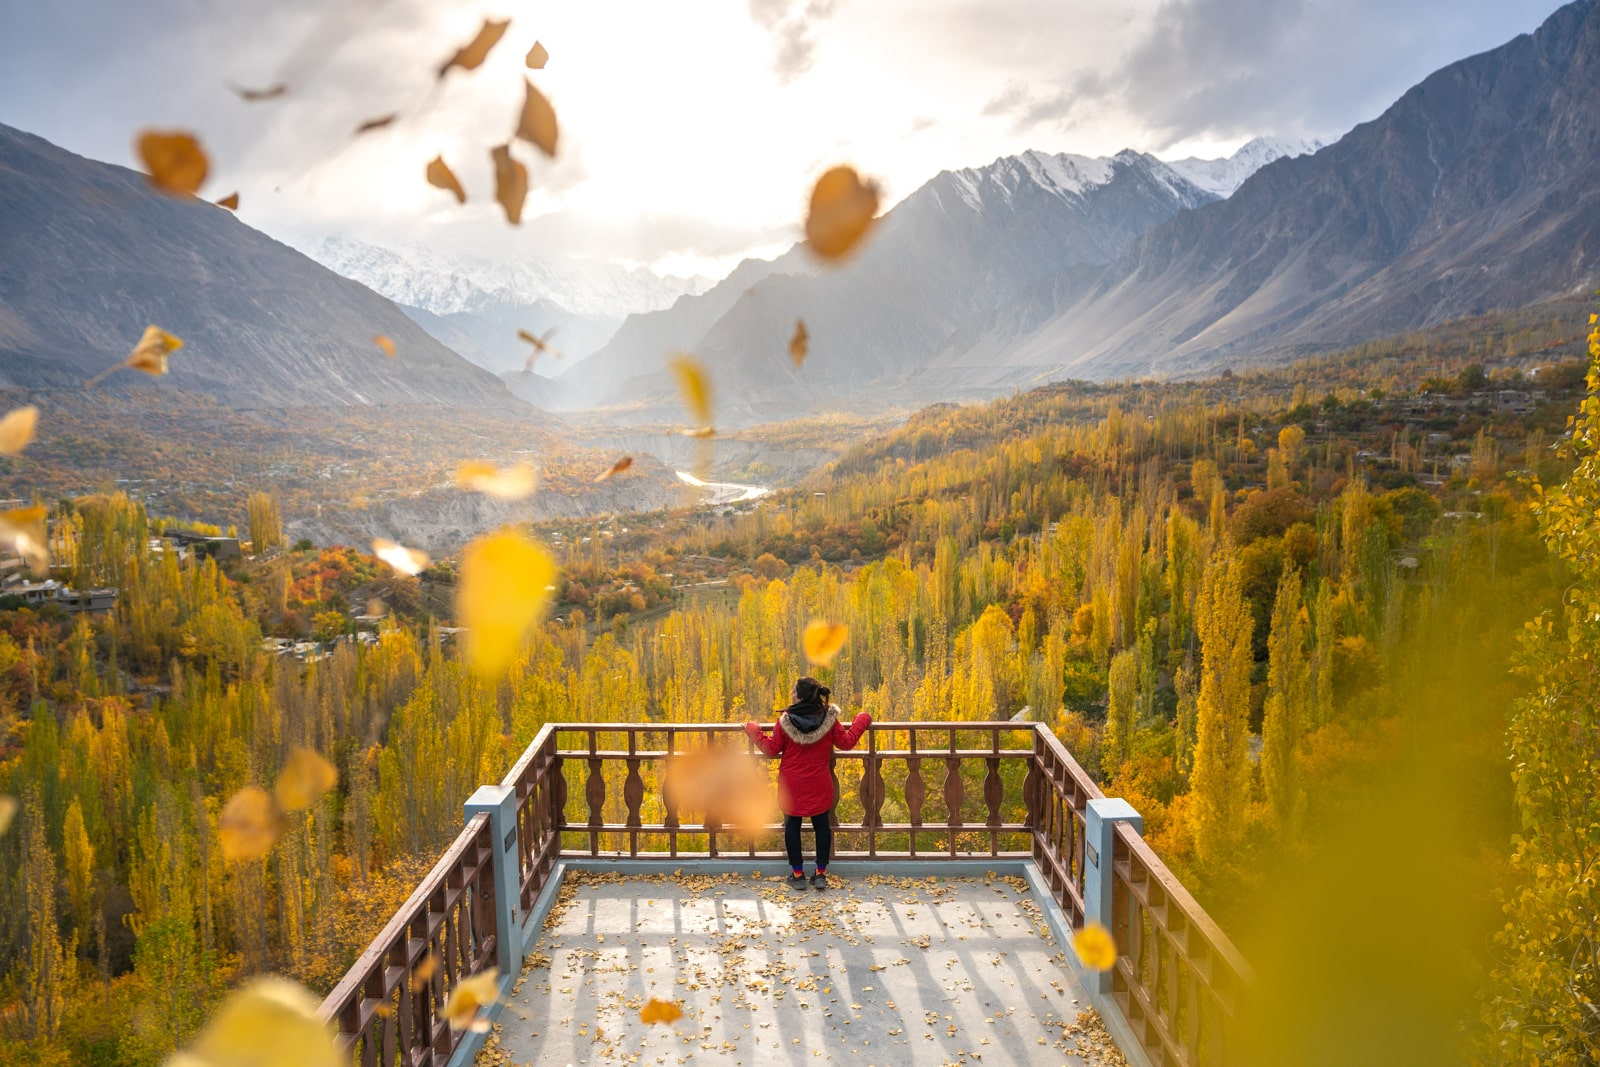 Pakistani female traveler in Hunza during autumn